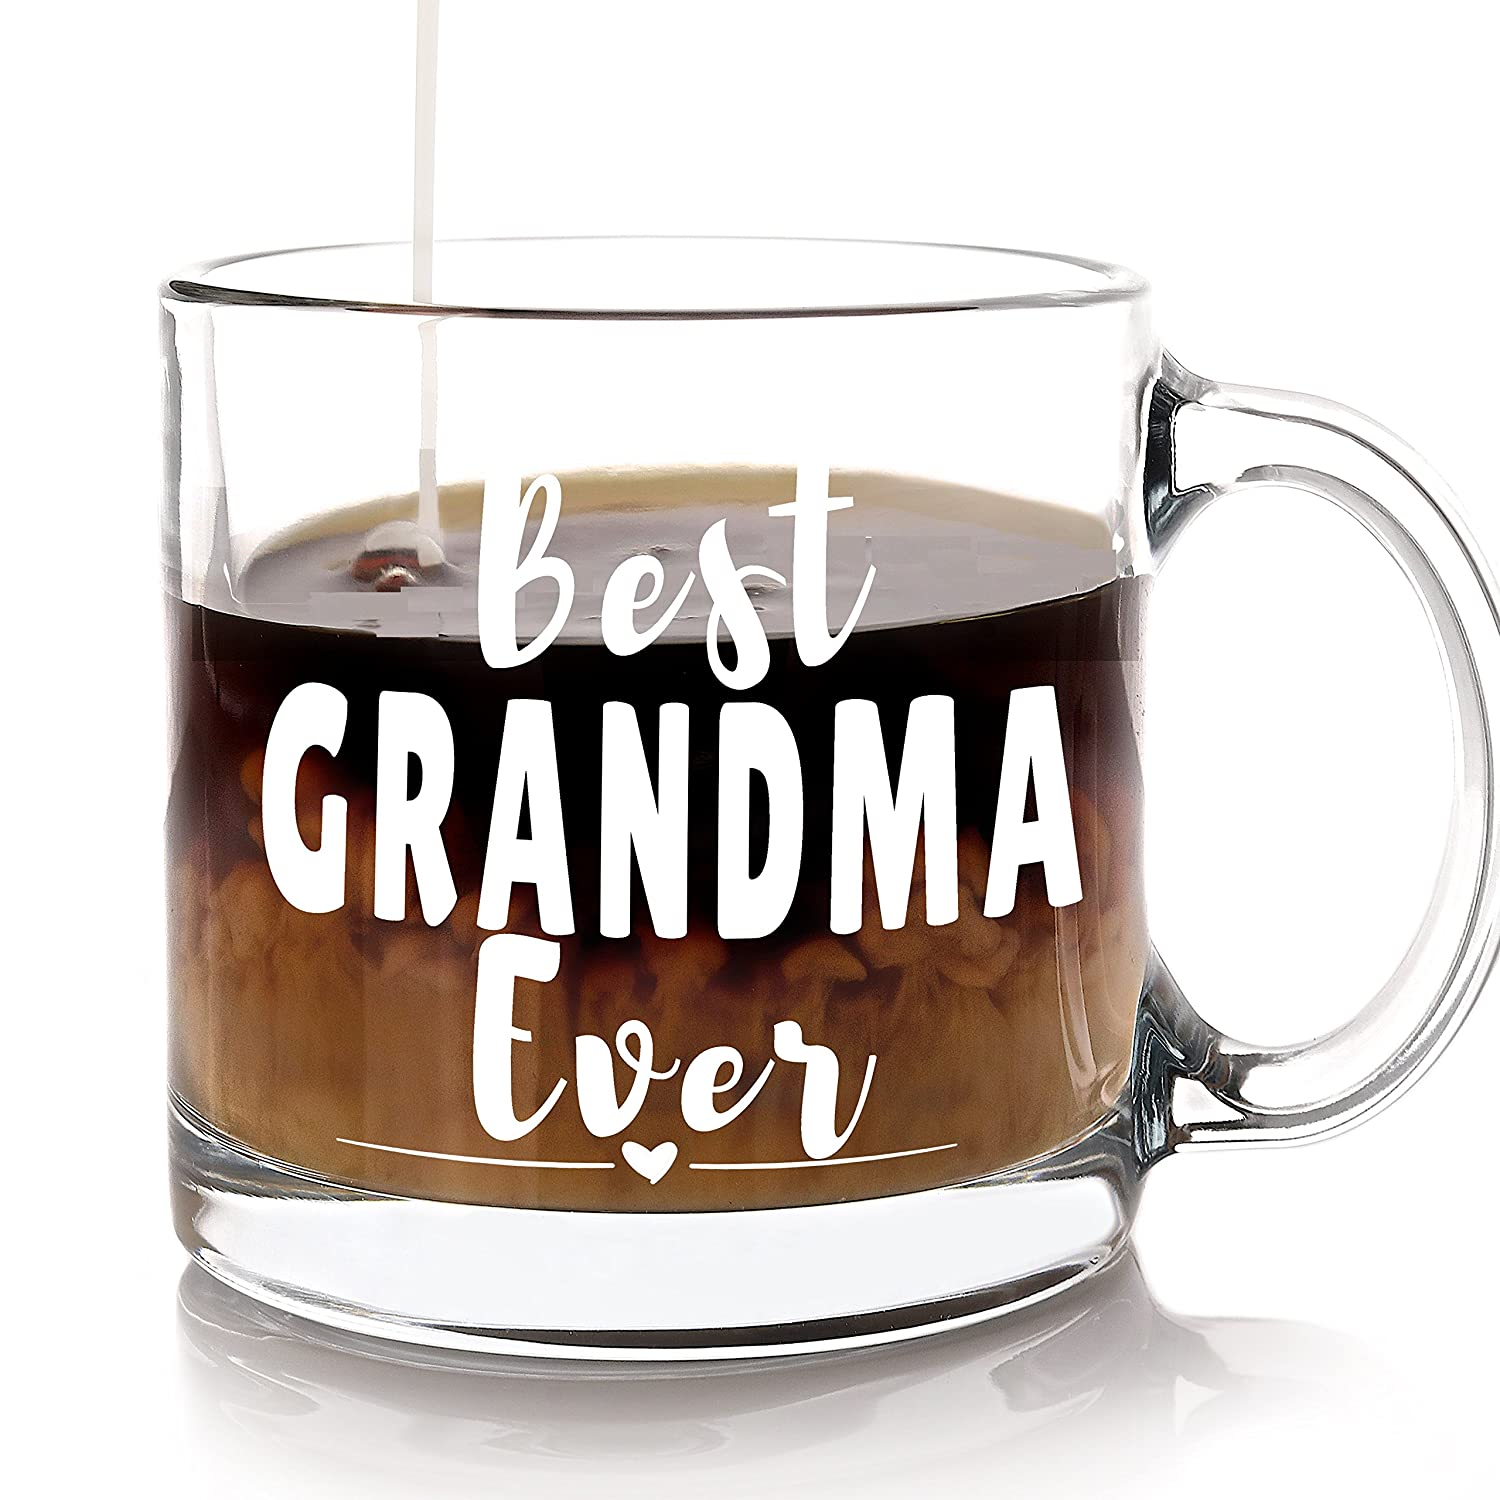 10+1 Heart-Warming Birthday Gifts for your Grandmother